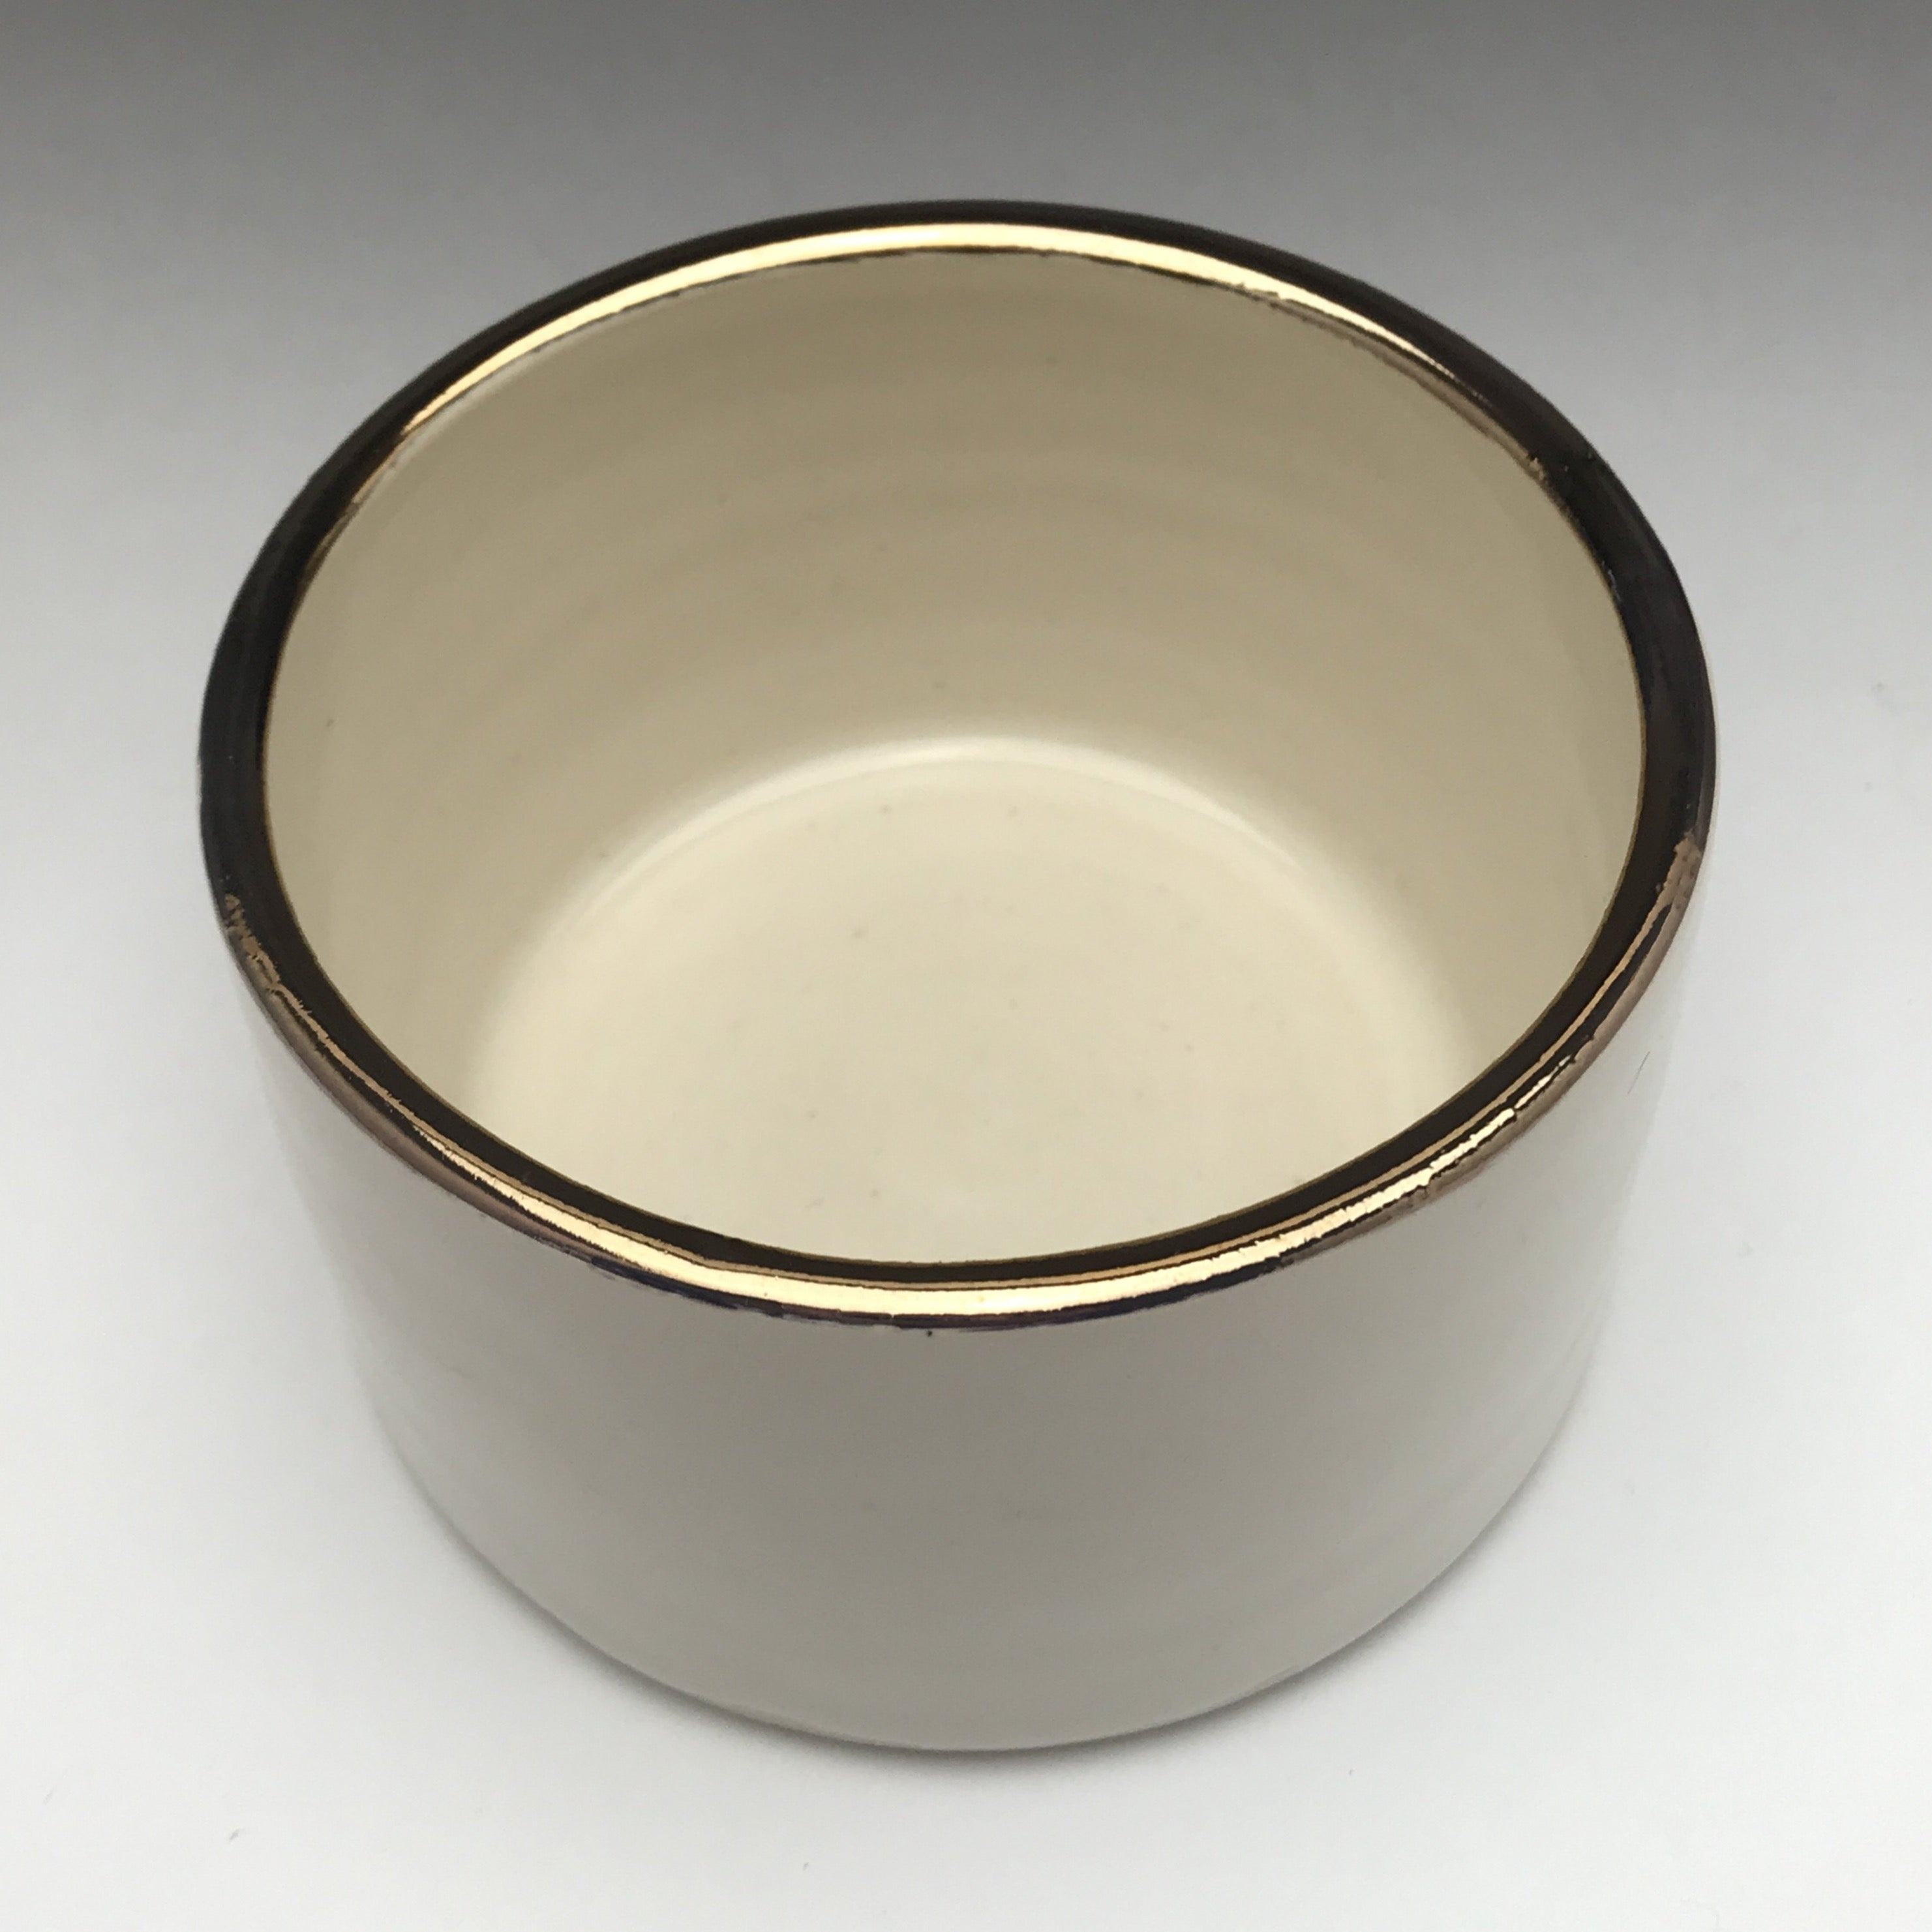 cylinder shaped ceramic dish with creamy white glaze and real gold accent on rim